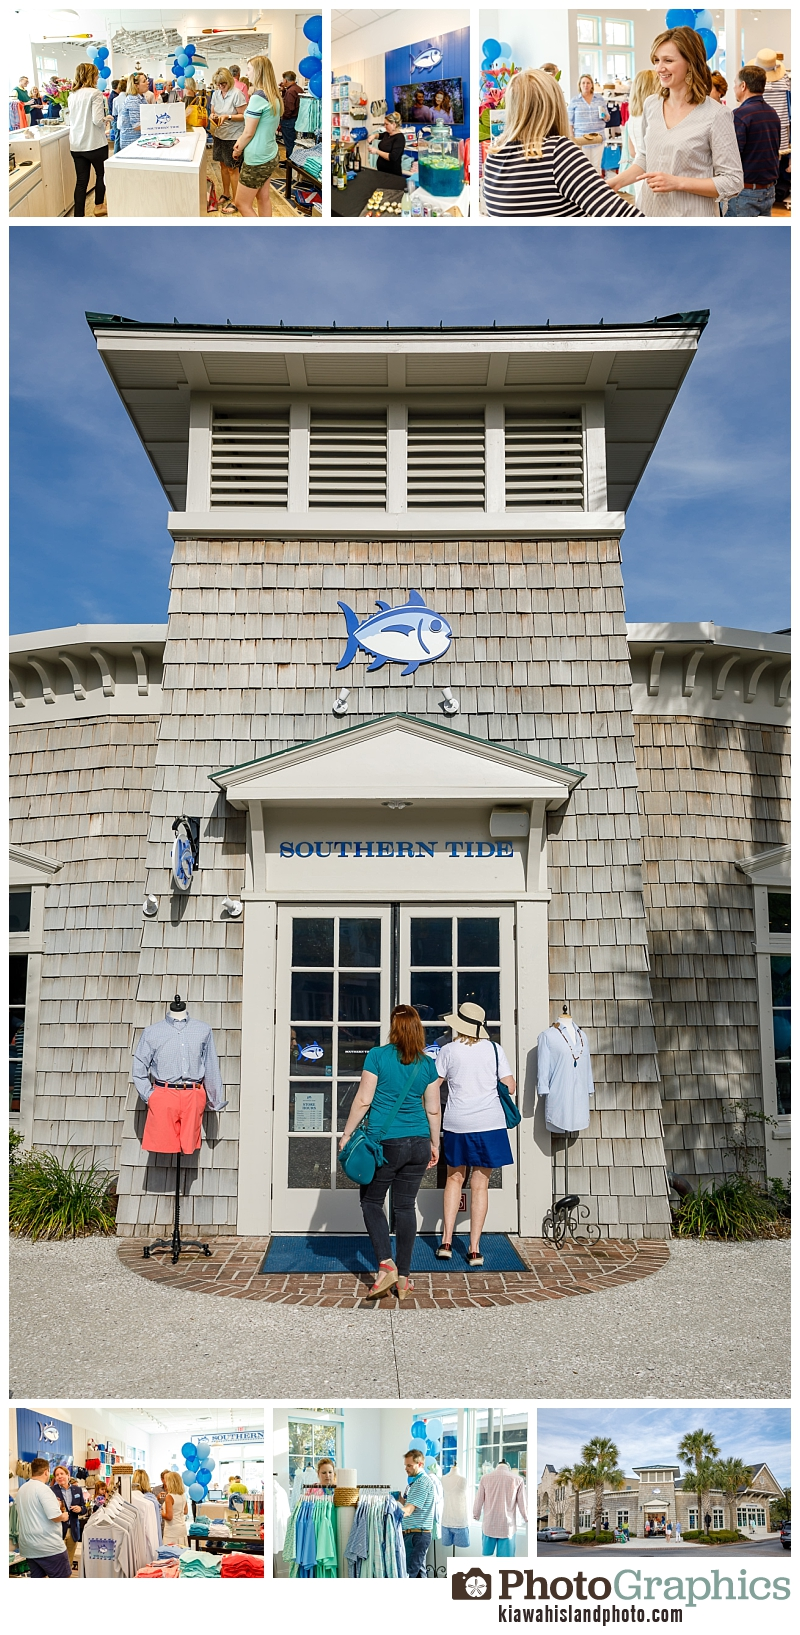 grand opening event of Southern Tide in Freshfields Village on Kiawah Island